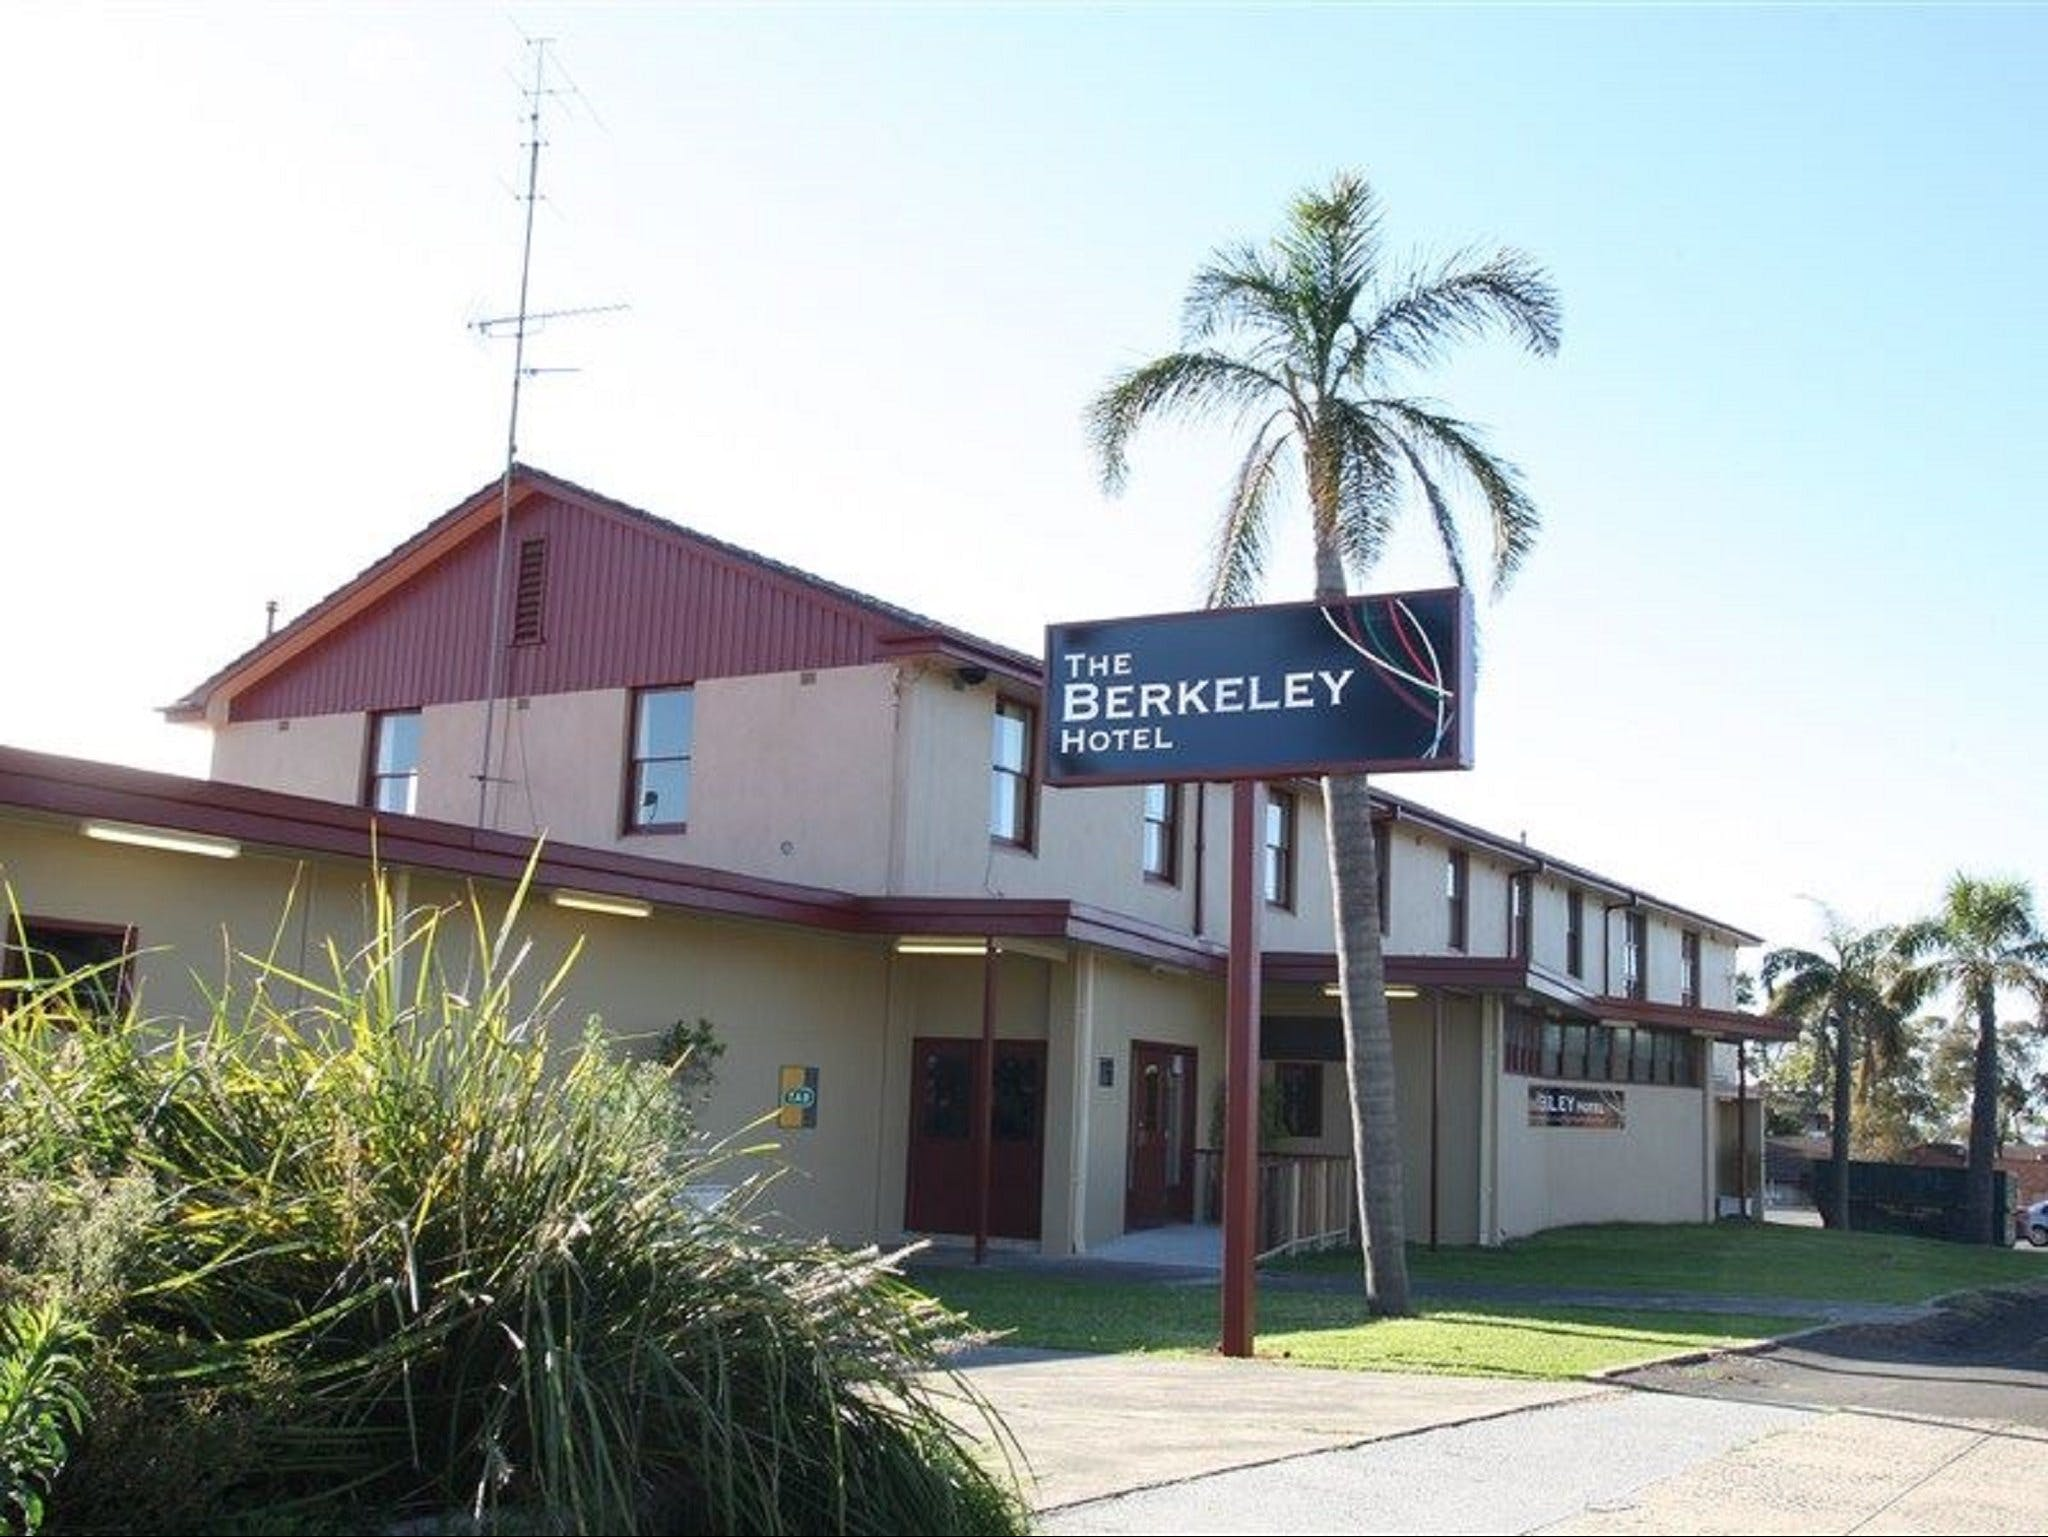 The Berkeley Hotel - South Australia Travel